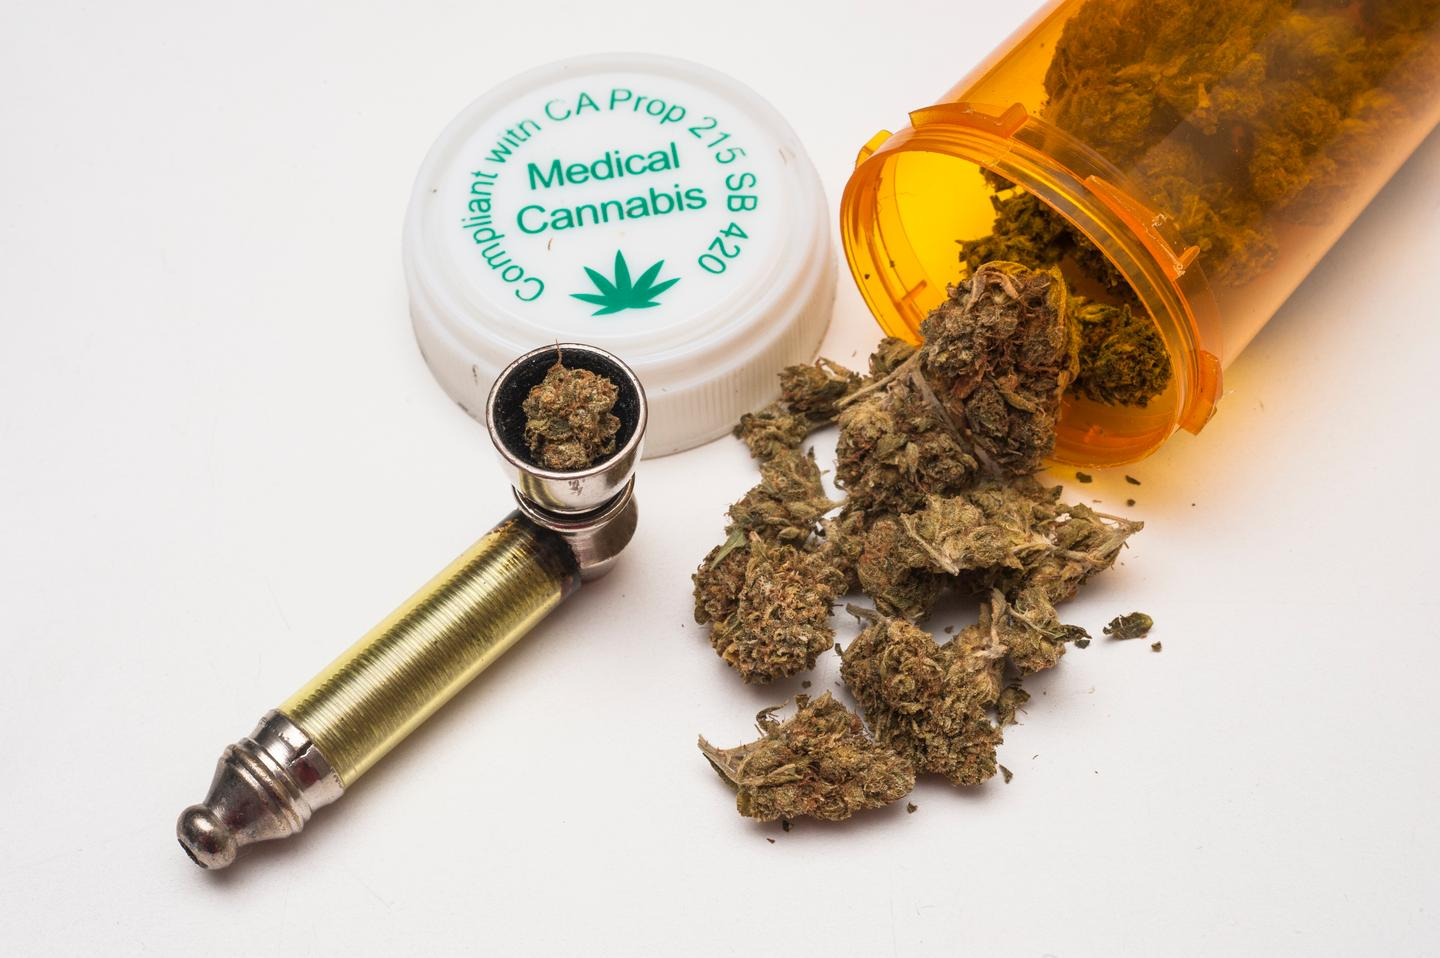 Why are there so many conflicting studies about whether cannabis is an effective painkiller?